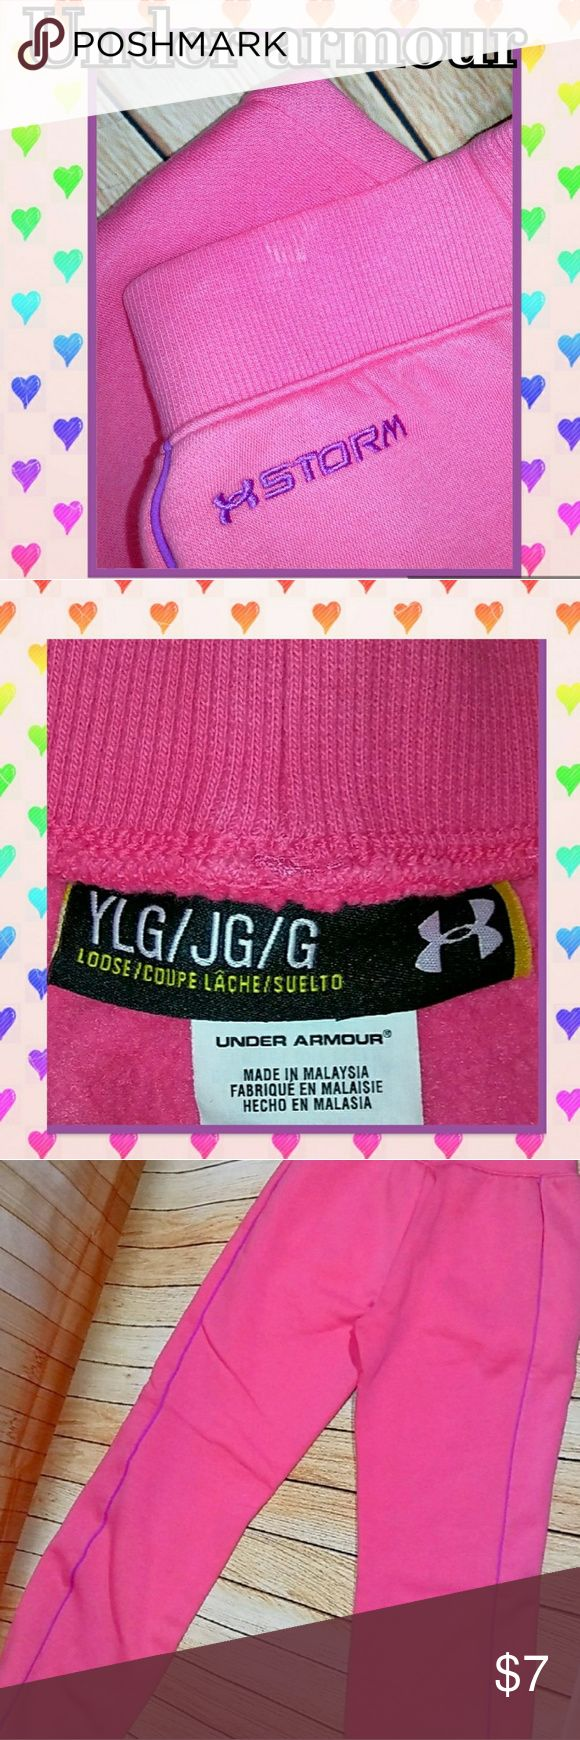 Under Armour Sweat Pants GUC~ The waist band has a very faint spot (shown in the first photo) that will most likely wash out~ Under Armour Bottoms Sweatpants & Joggers